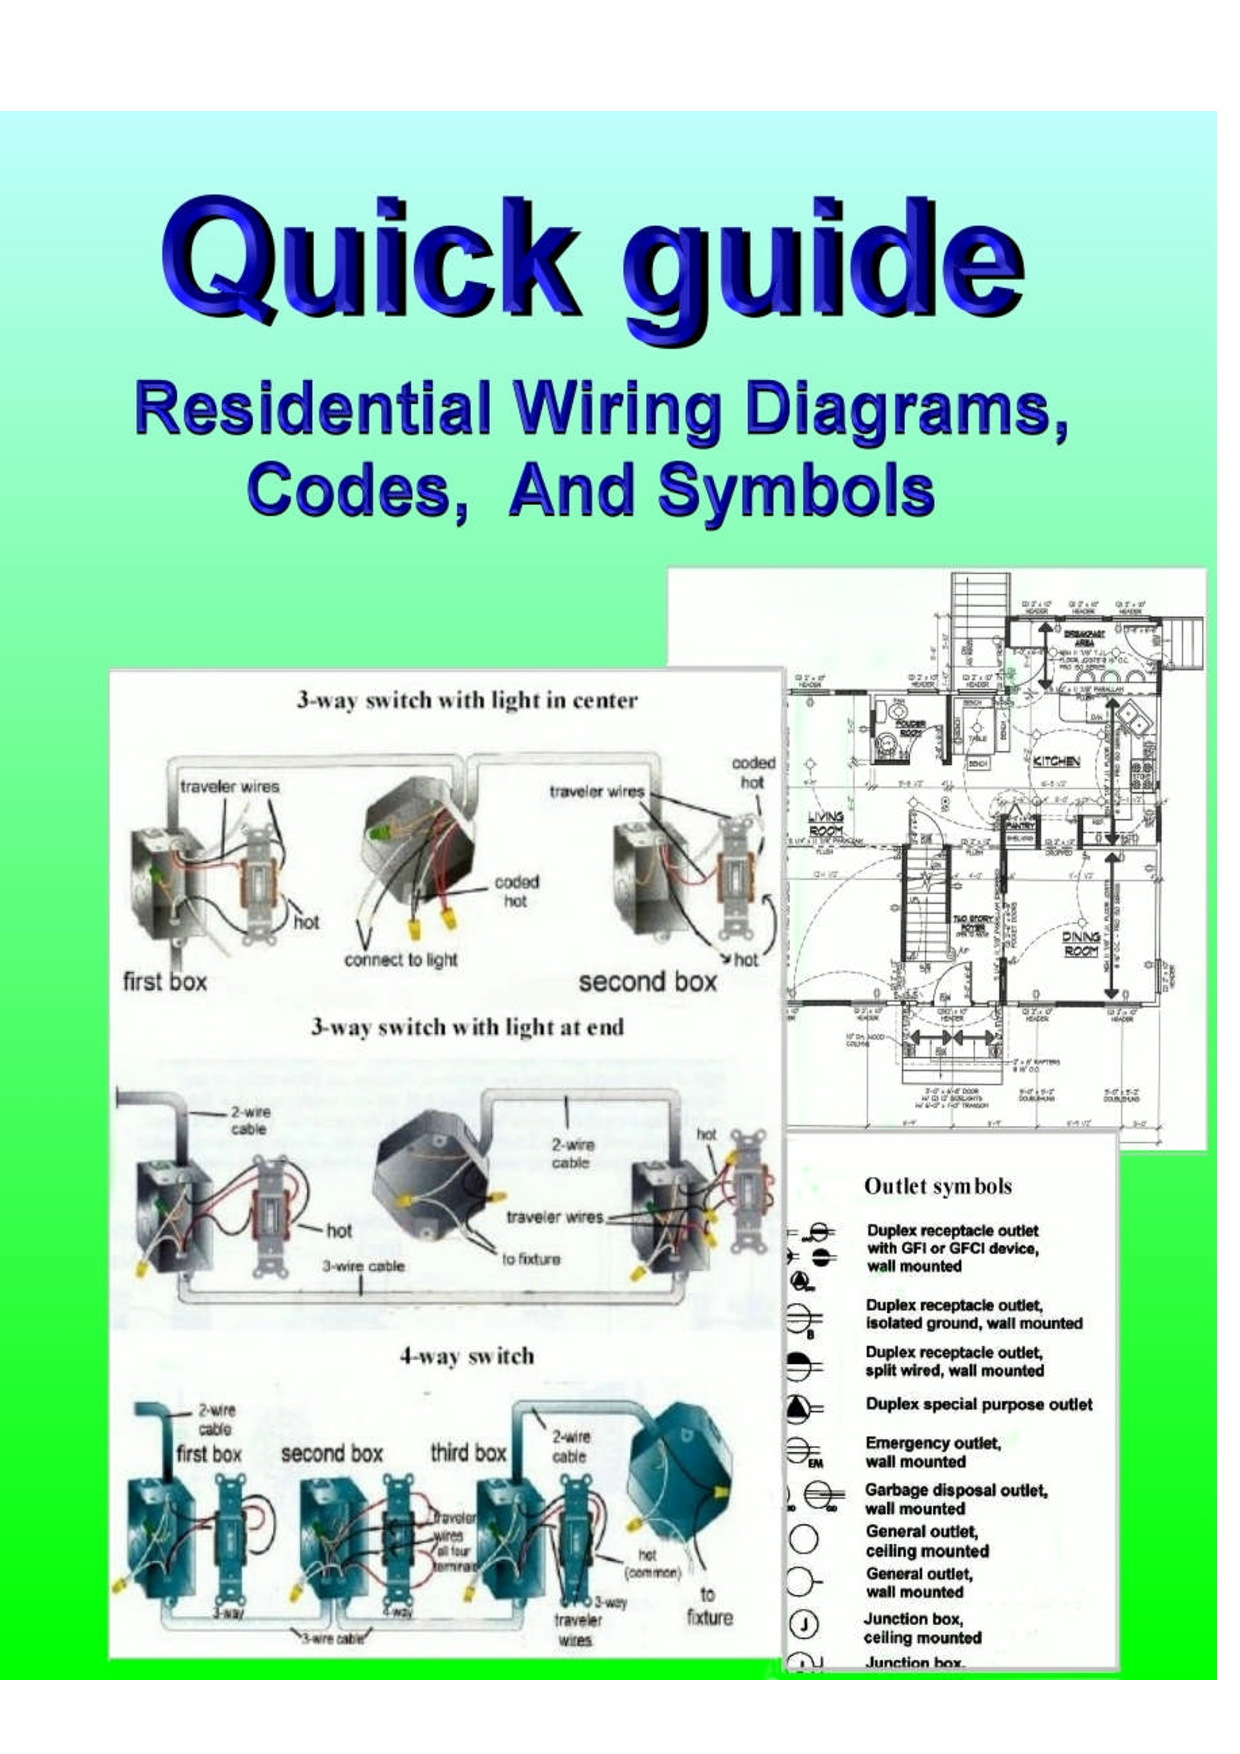 Home Electrical Wiring Diagramspdf Download Legal Documents 39 Diagram For Iec Plug Pages With Many Diagrams And Illustrations A Step By Guide